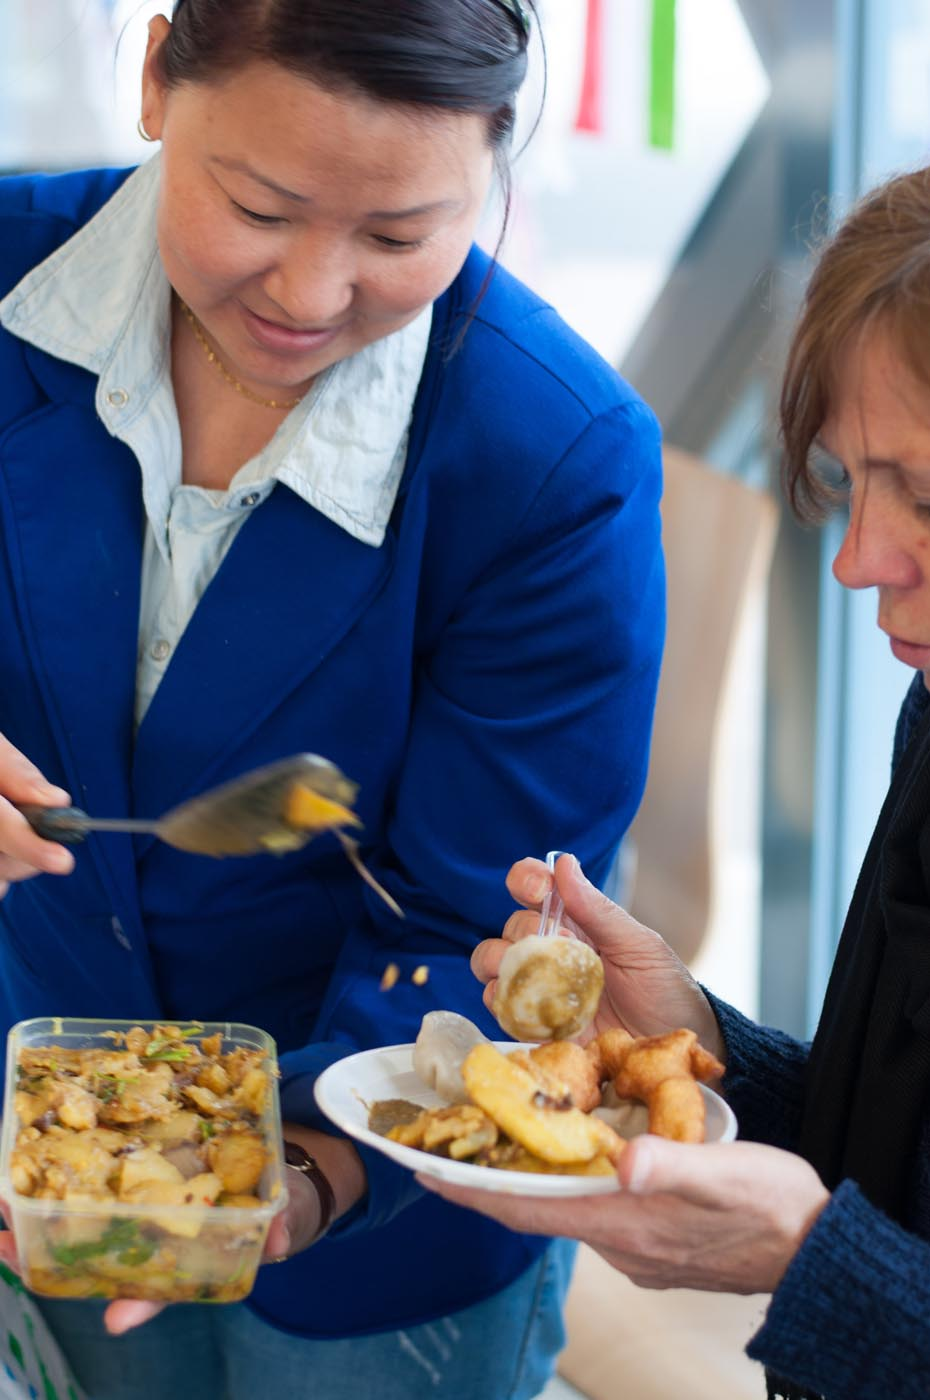 Photo of a lady holding a container of a dish placing a serve onto another person's plate - click to view larger image